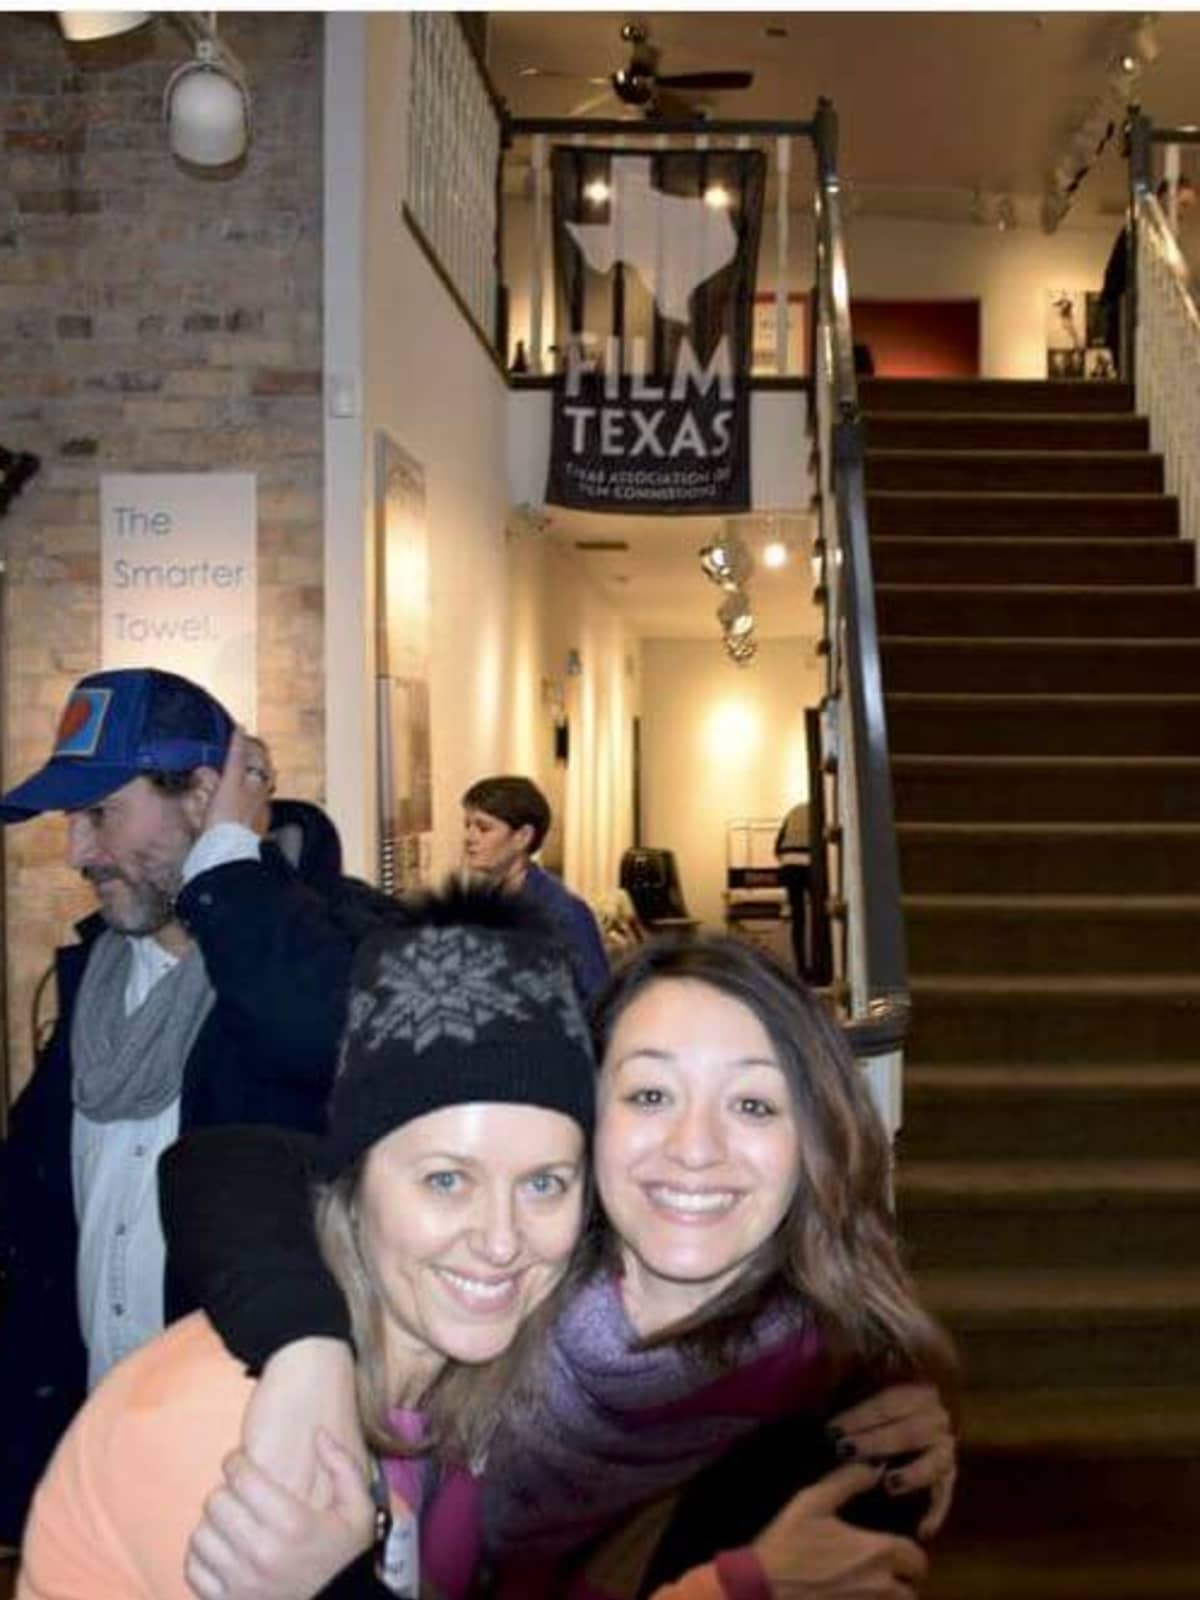 Heather Page, Director and Lindsey Ashley, Senior Production Consultant at the Texas Film Commission at the Texas Film Commission open house during Sundance 2017